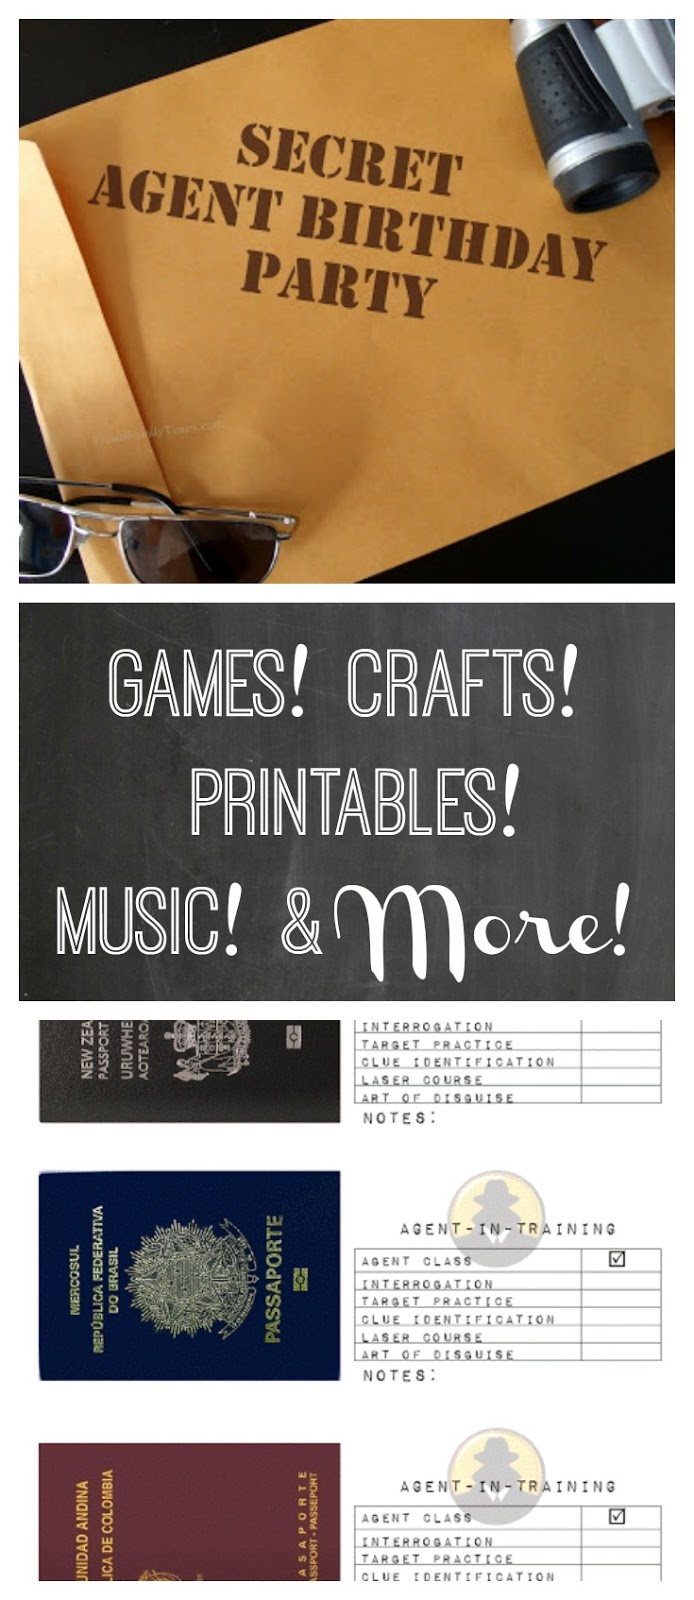 Secret Agent Birthday Party Ideas Printables Games And